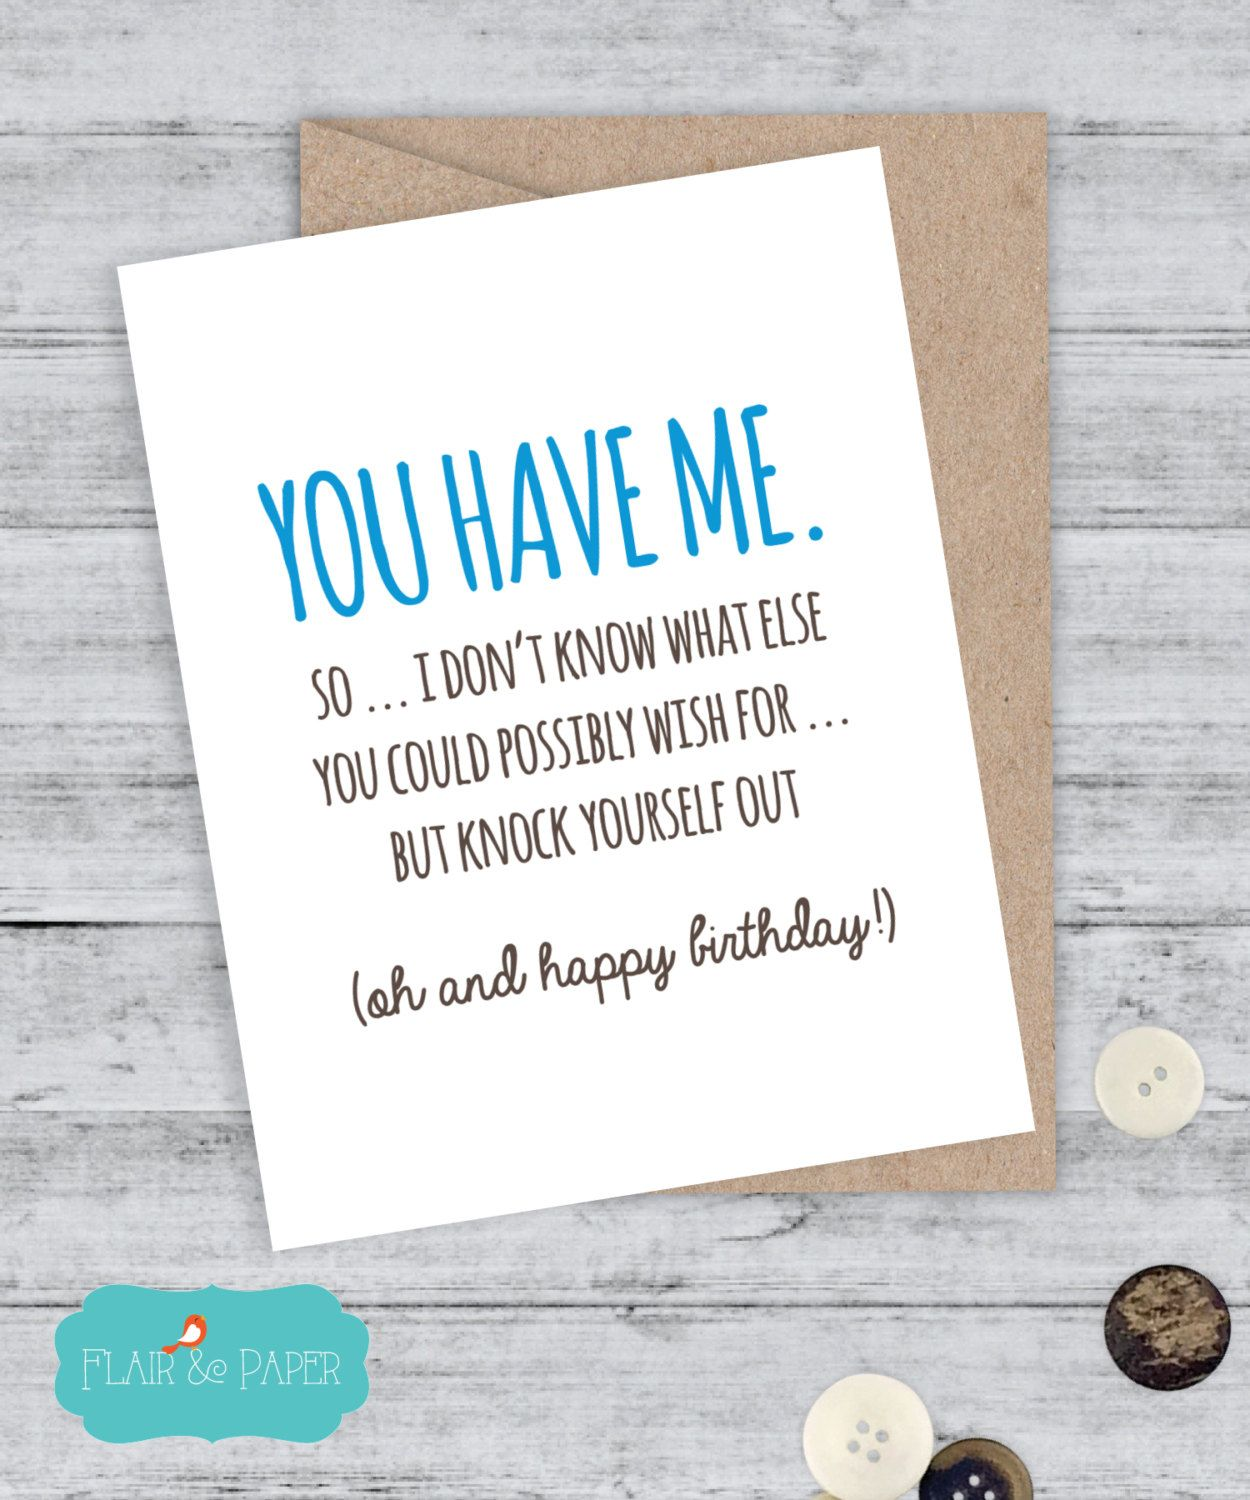 Birthday Card For Fiance Hallmark 9596b91ab8295659ab83501c24dfb25a